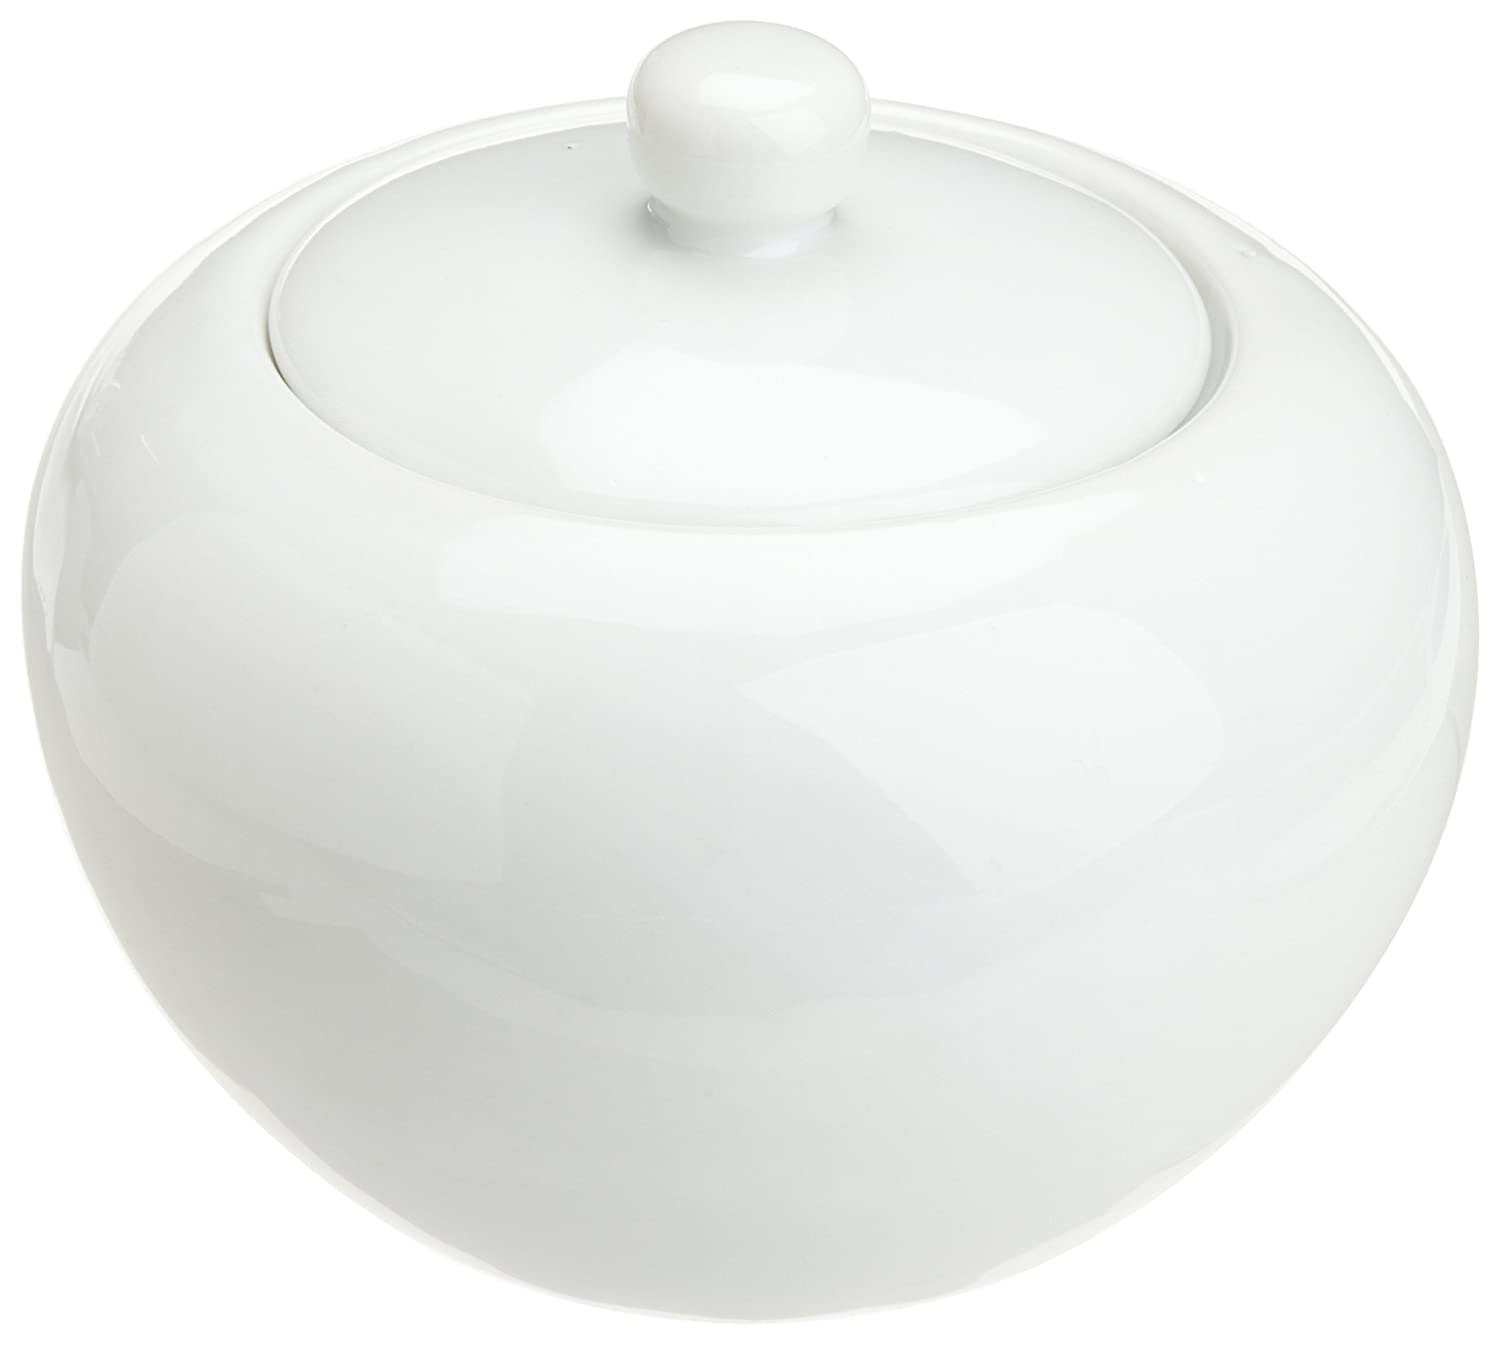 Honey-Can-Do 8128 Porcelain Sugar Bowl, White, 3-Inches x 4.25-Inches W Kitchen Supply